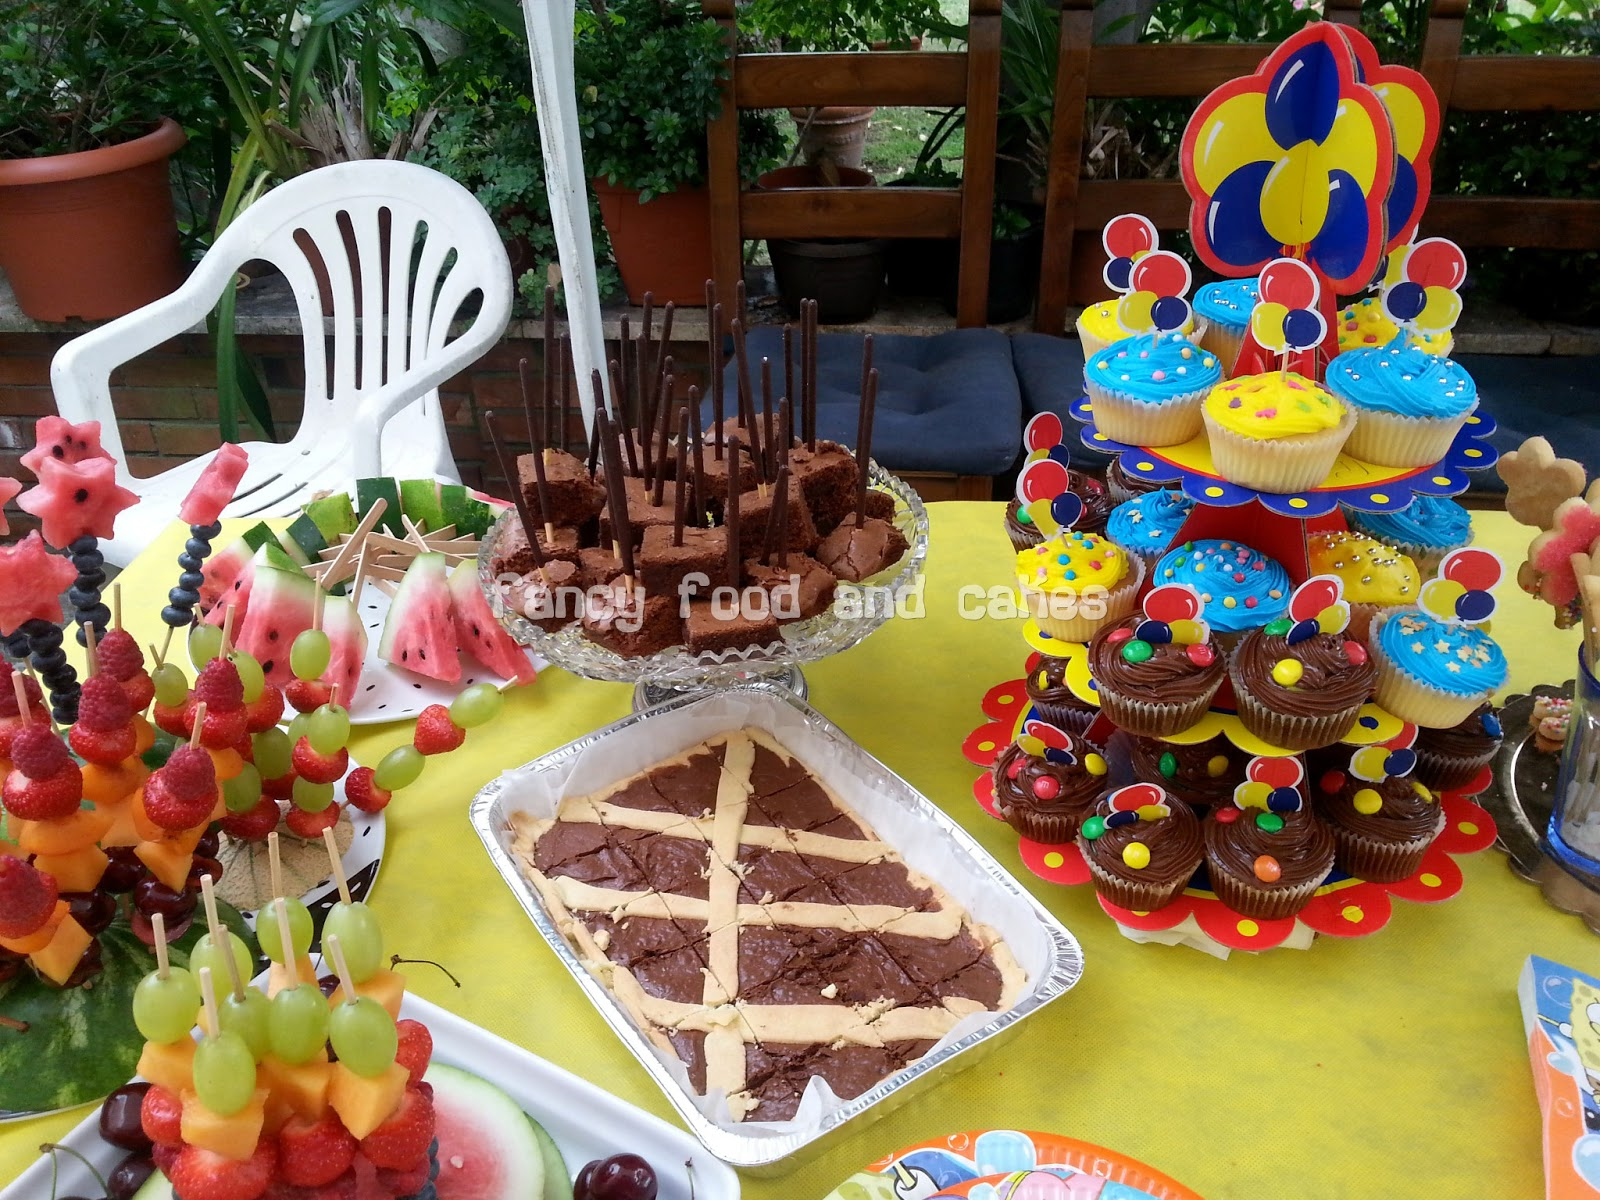 ... cakes: Buffet per un compleanno estivo - Buffet for a summer birthday